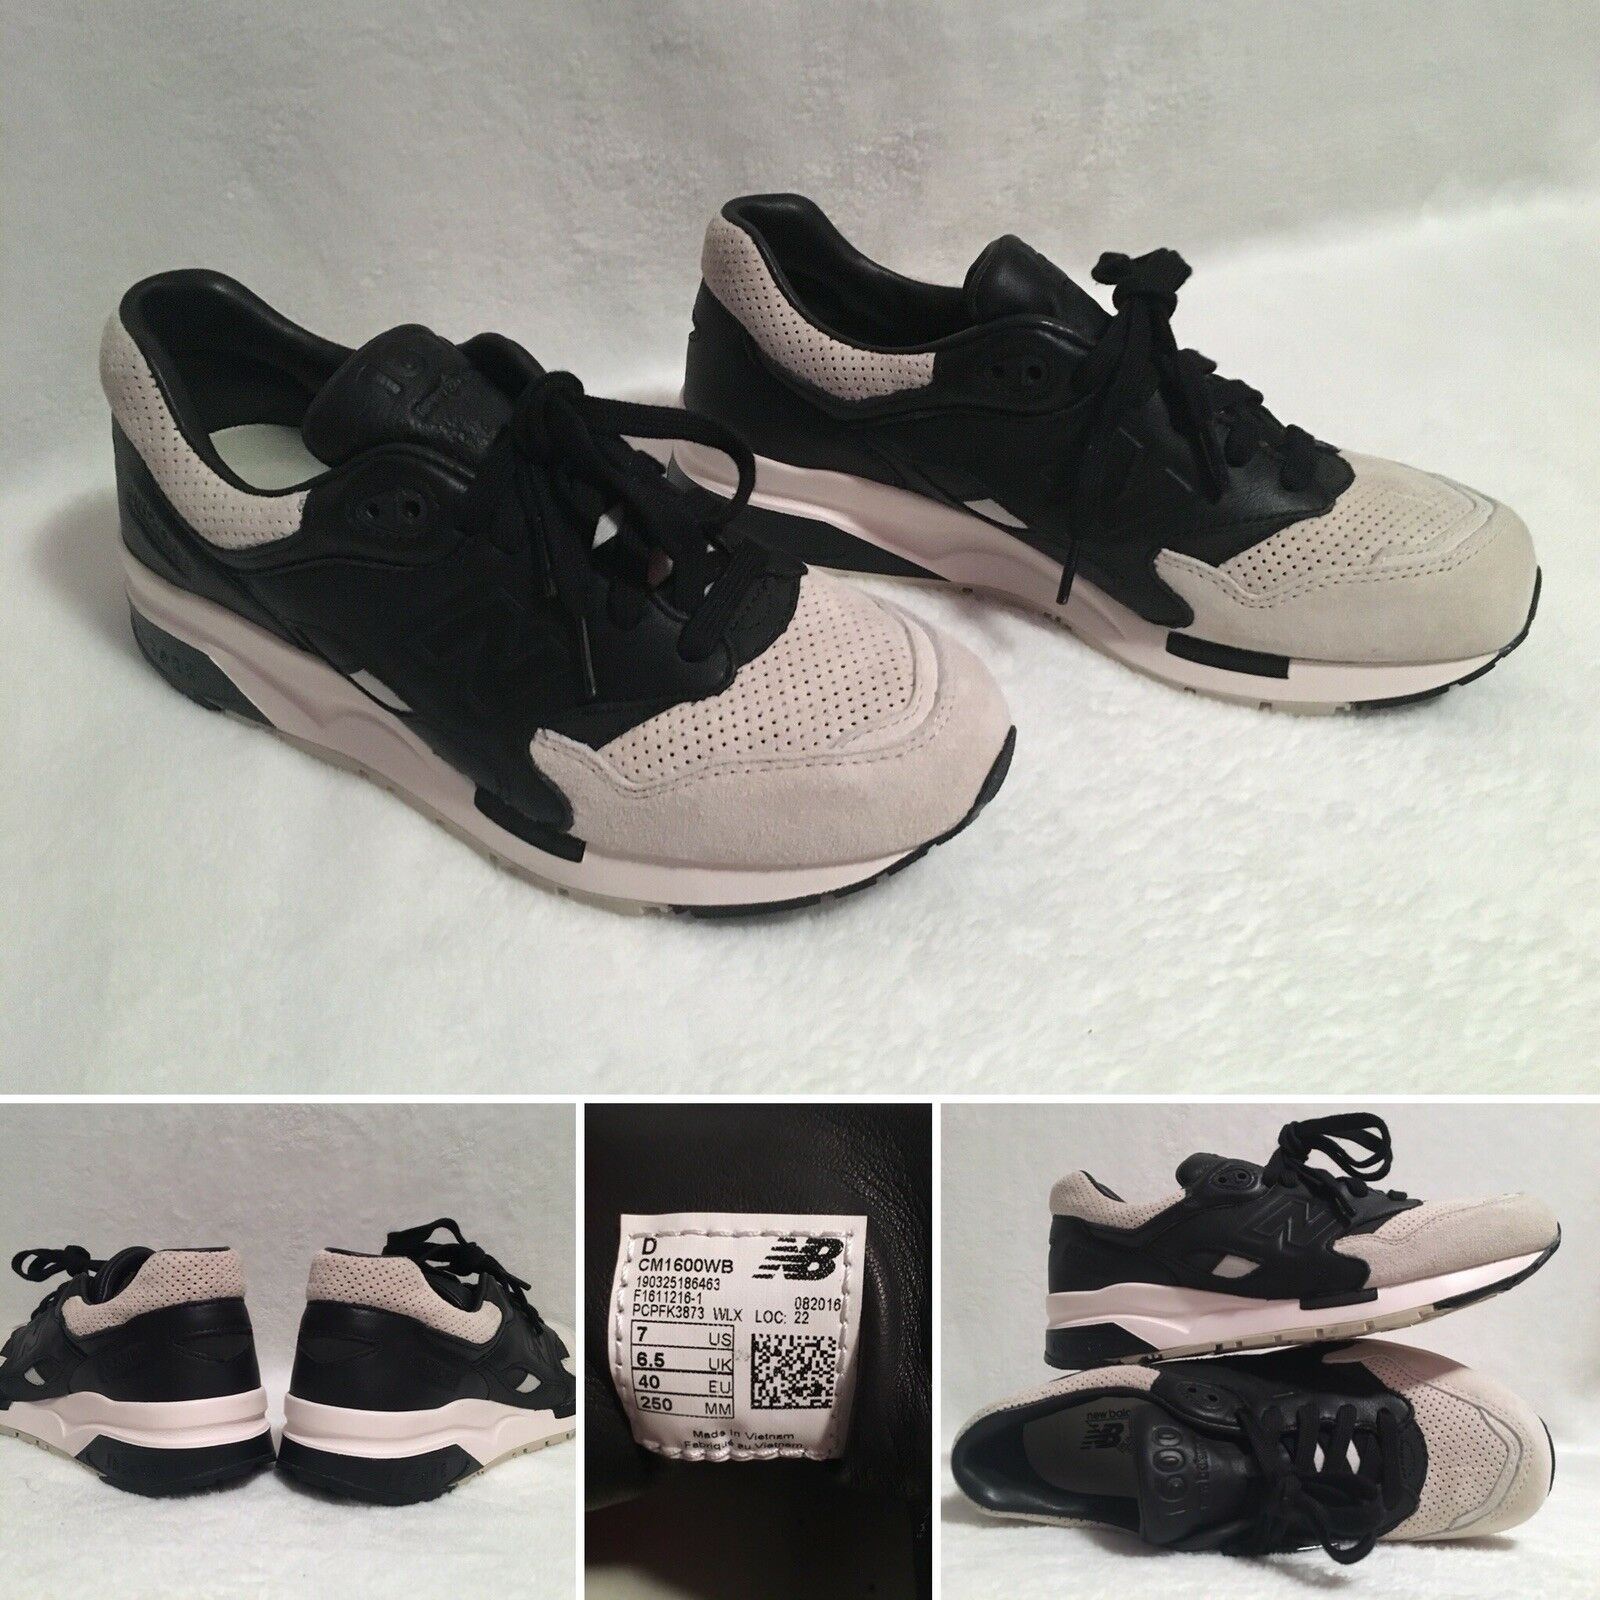 Homme New Balance CM1600WB Navy  Gris  Running Chaussures Sneaker Leather